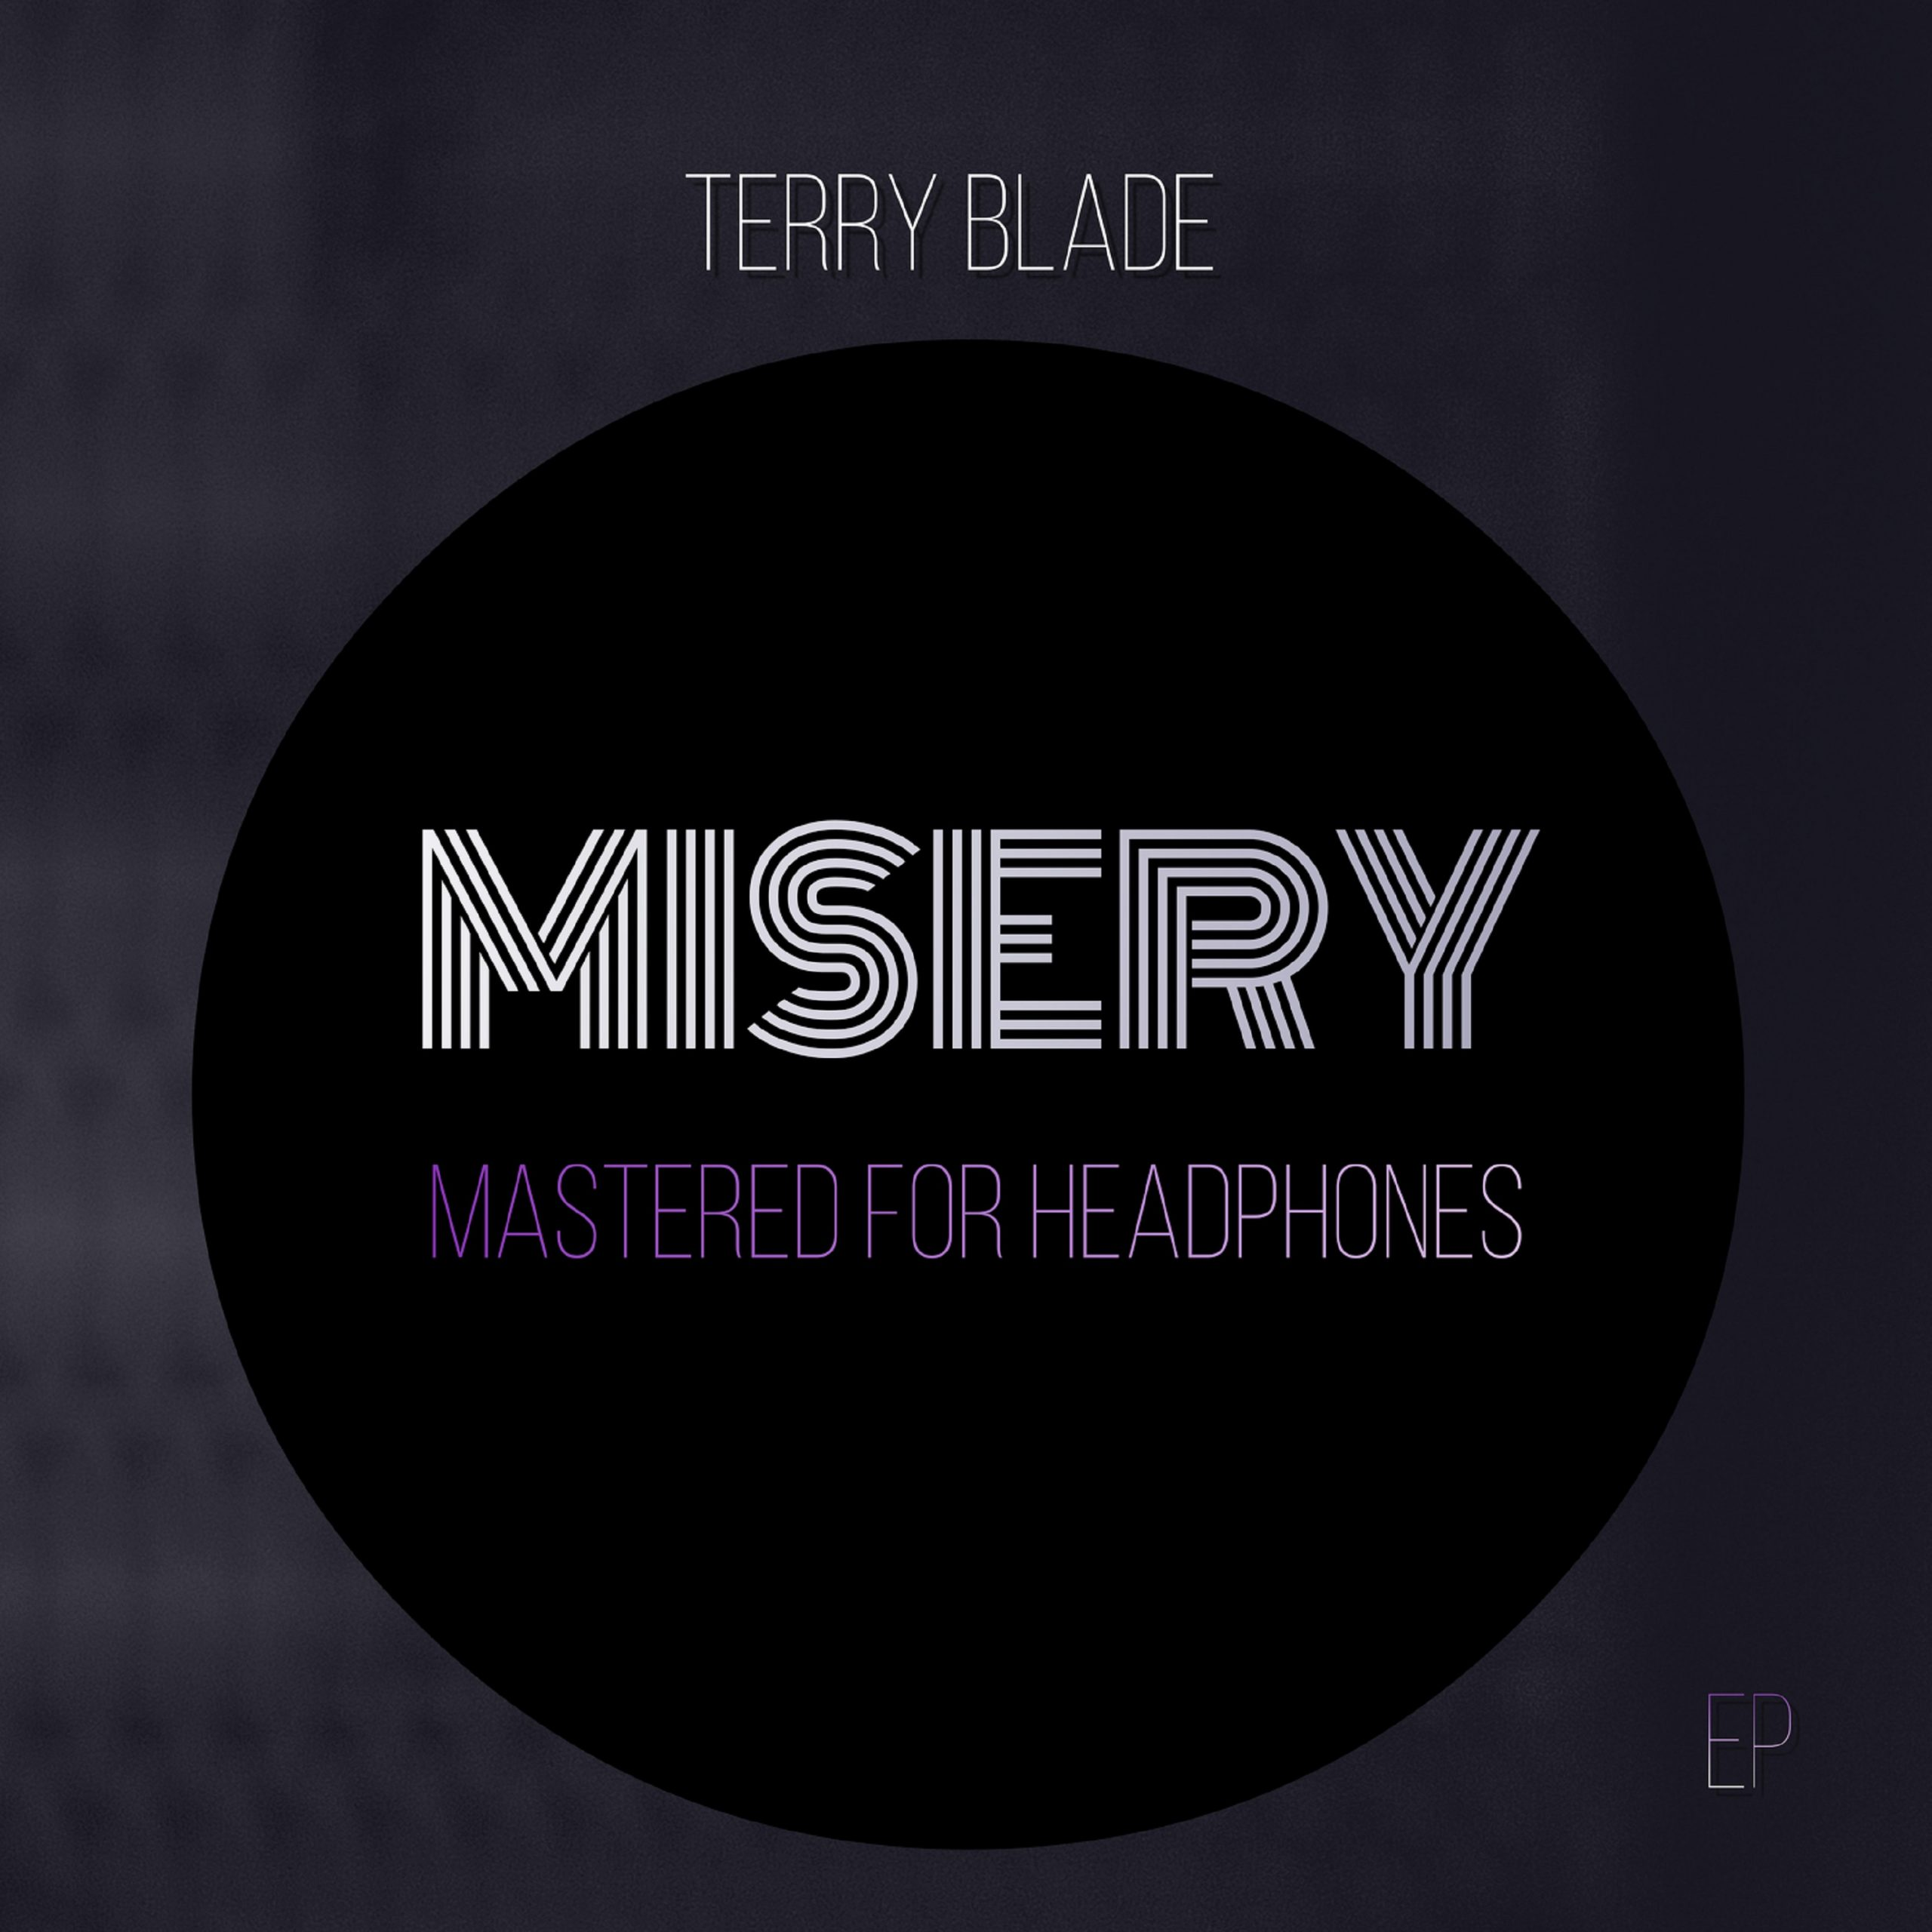 Terry Blade // Misery - EP cover